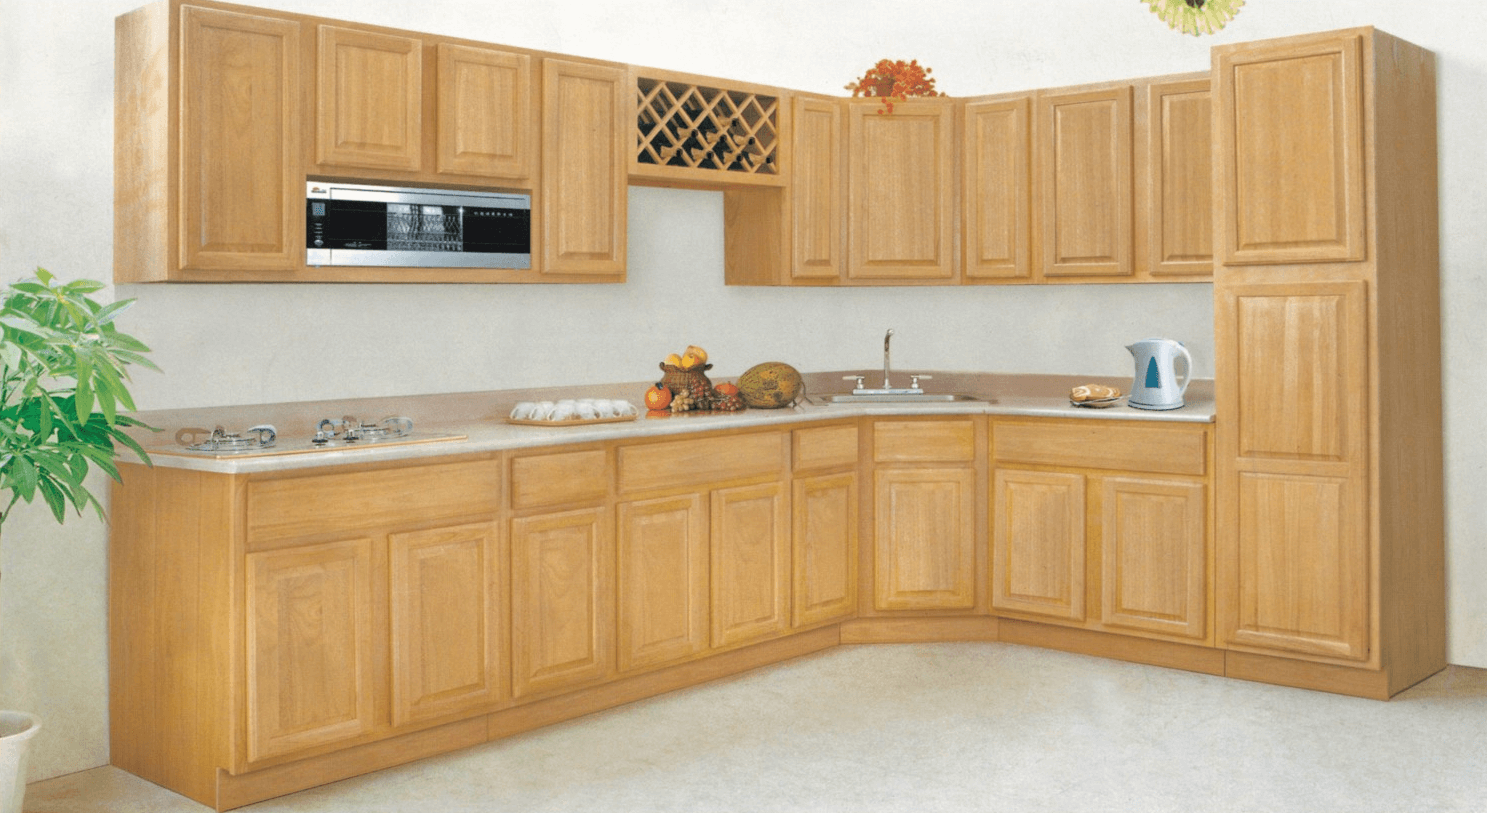 How to Stain Wood Cabinets without Sanding